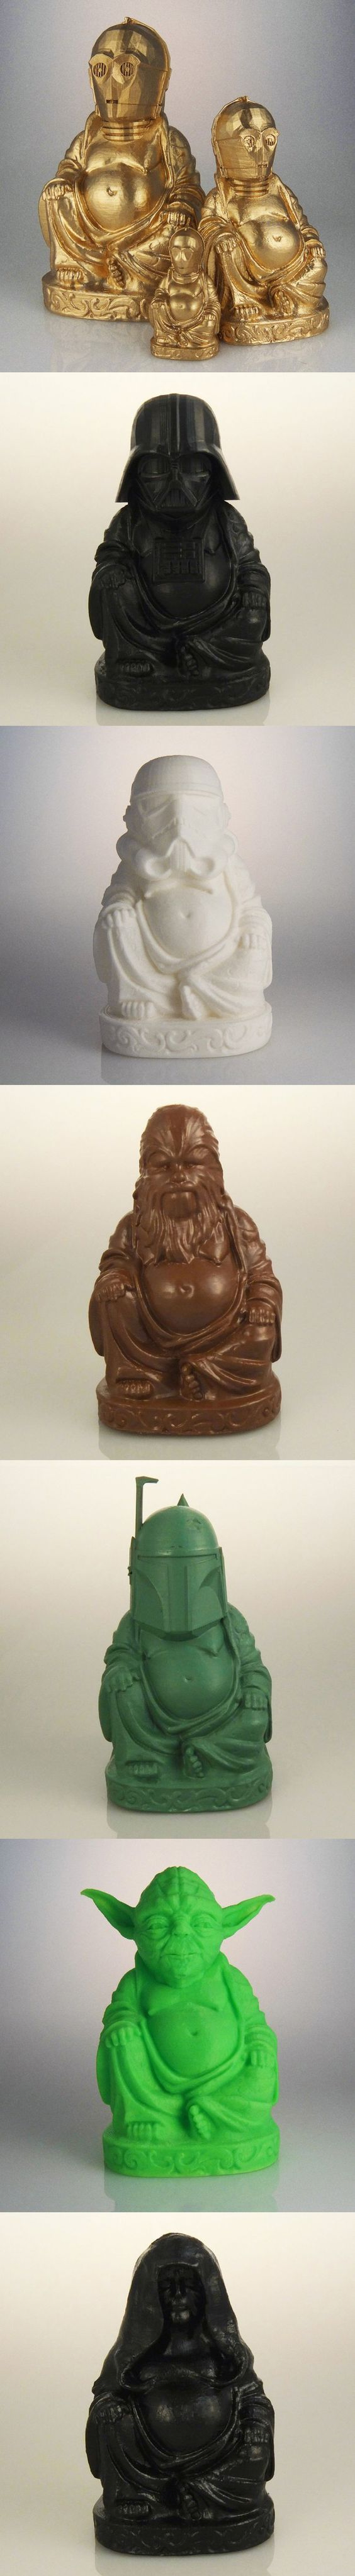 """3D Printed Geeky Laughing Buddhas: What is the Sound of One Han Shooting? Tap into the force of Luck with Chris """"muckychris"""" Milnes' 3D printed geeky Budai statues, which swaps the jelly bellied deity's head with characters from Star Wars:"""